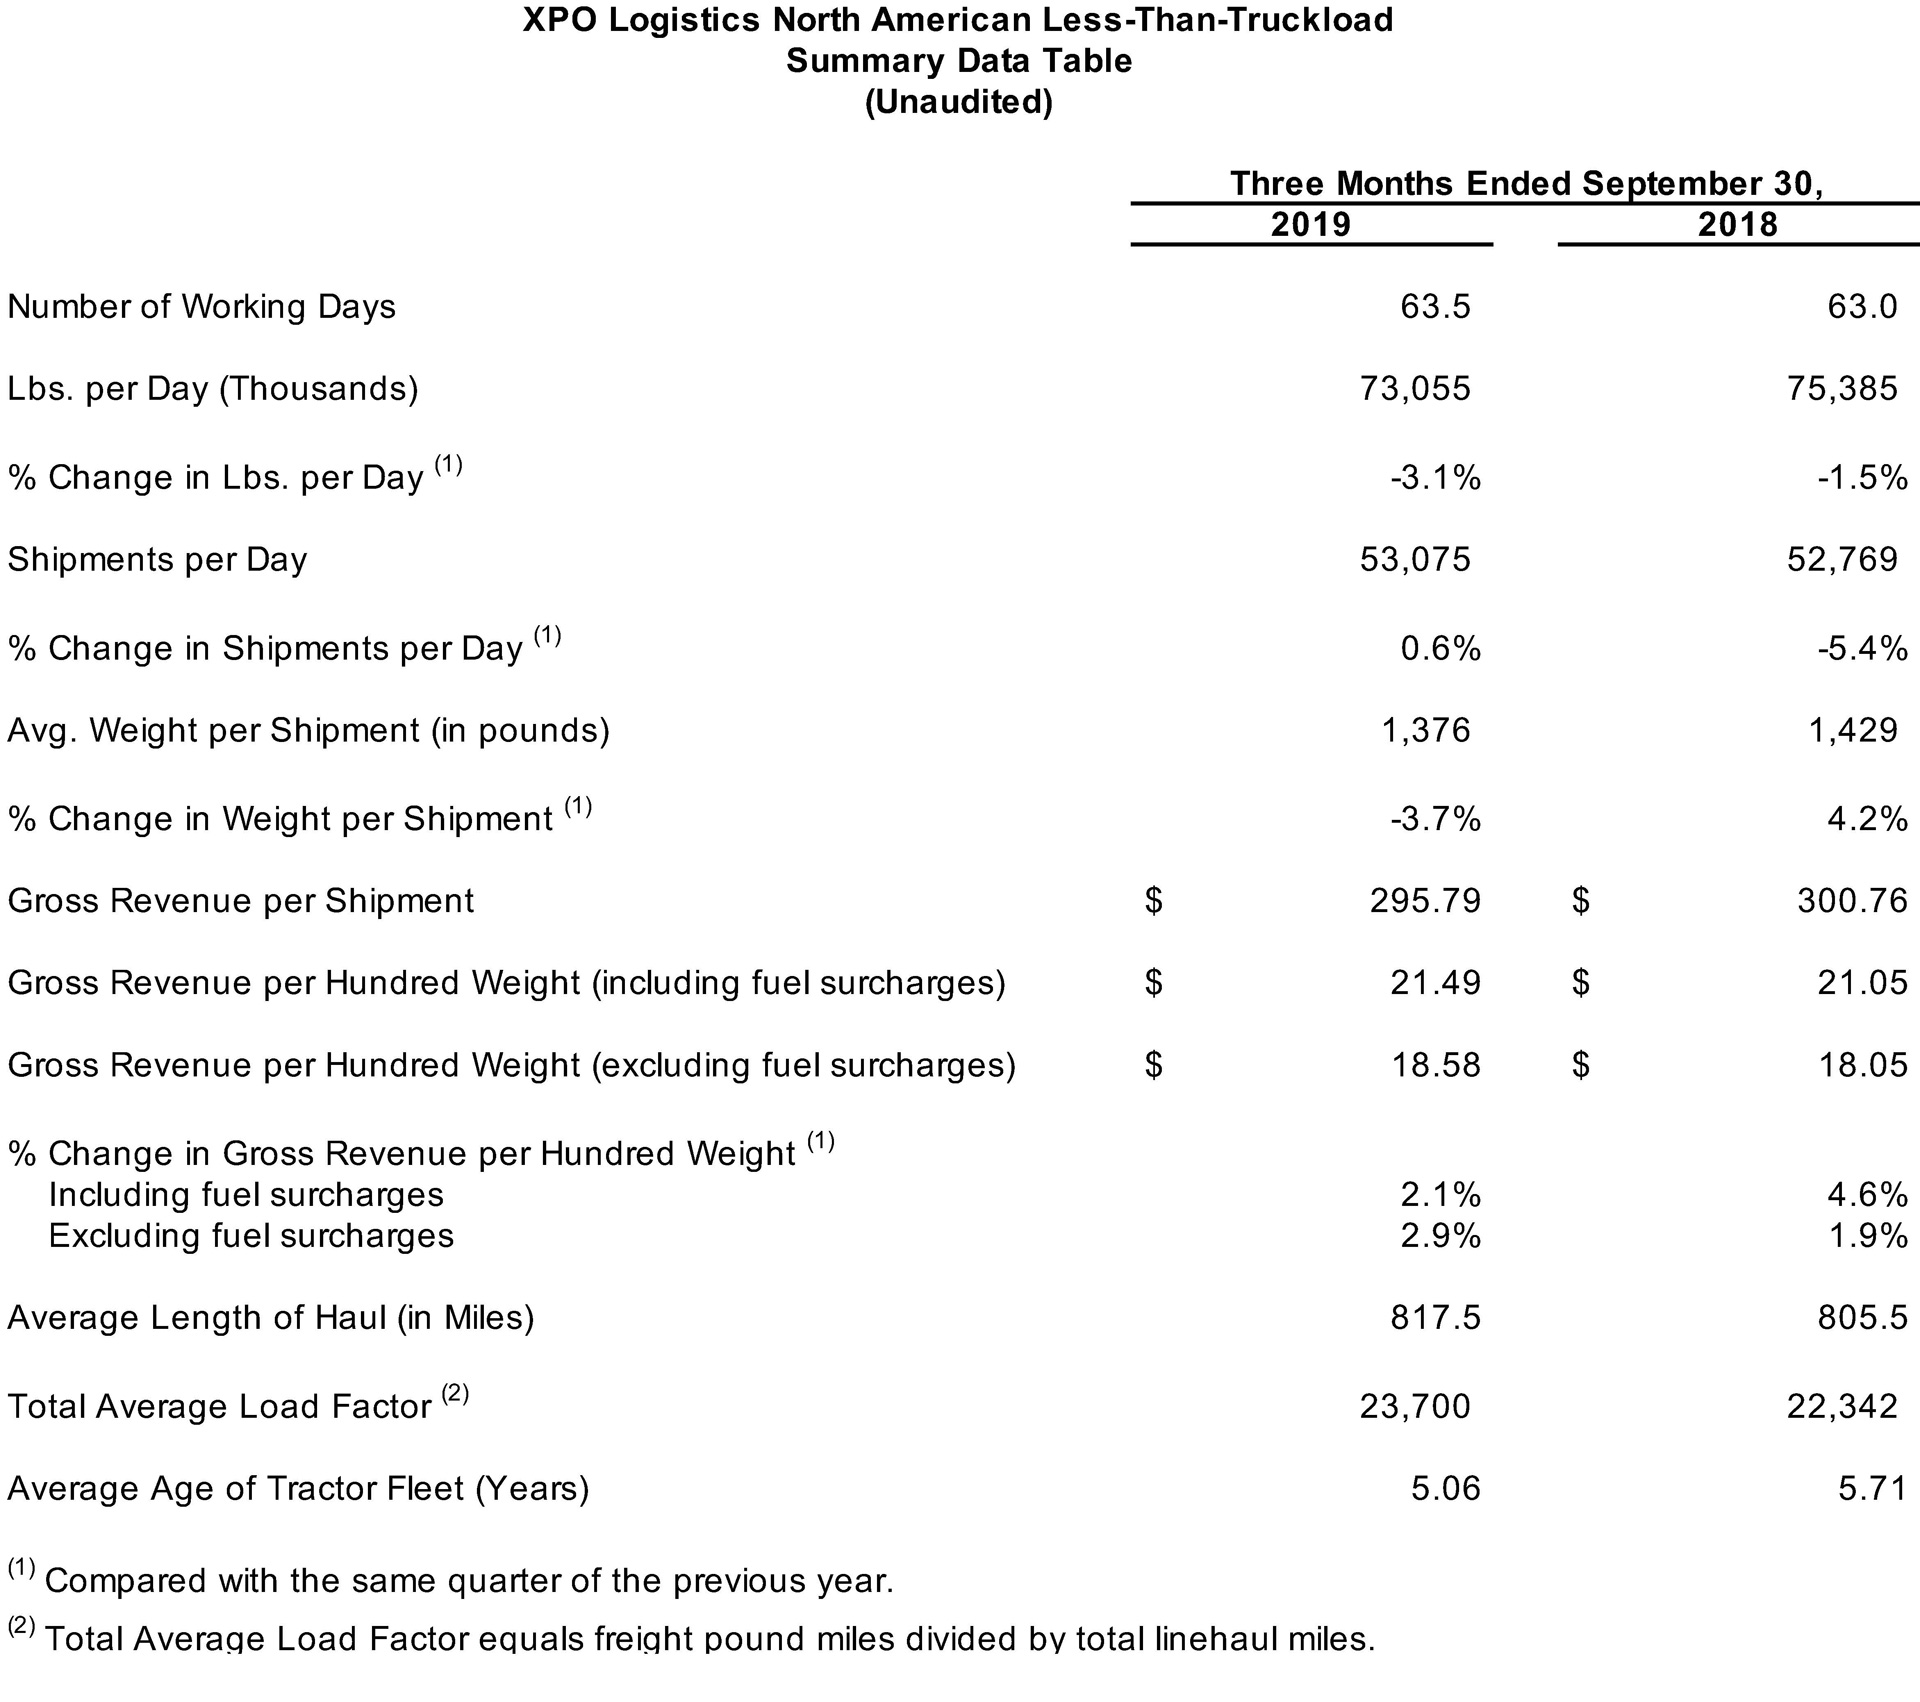 North American LTL Summary Data Table